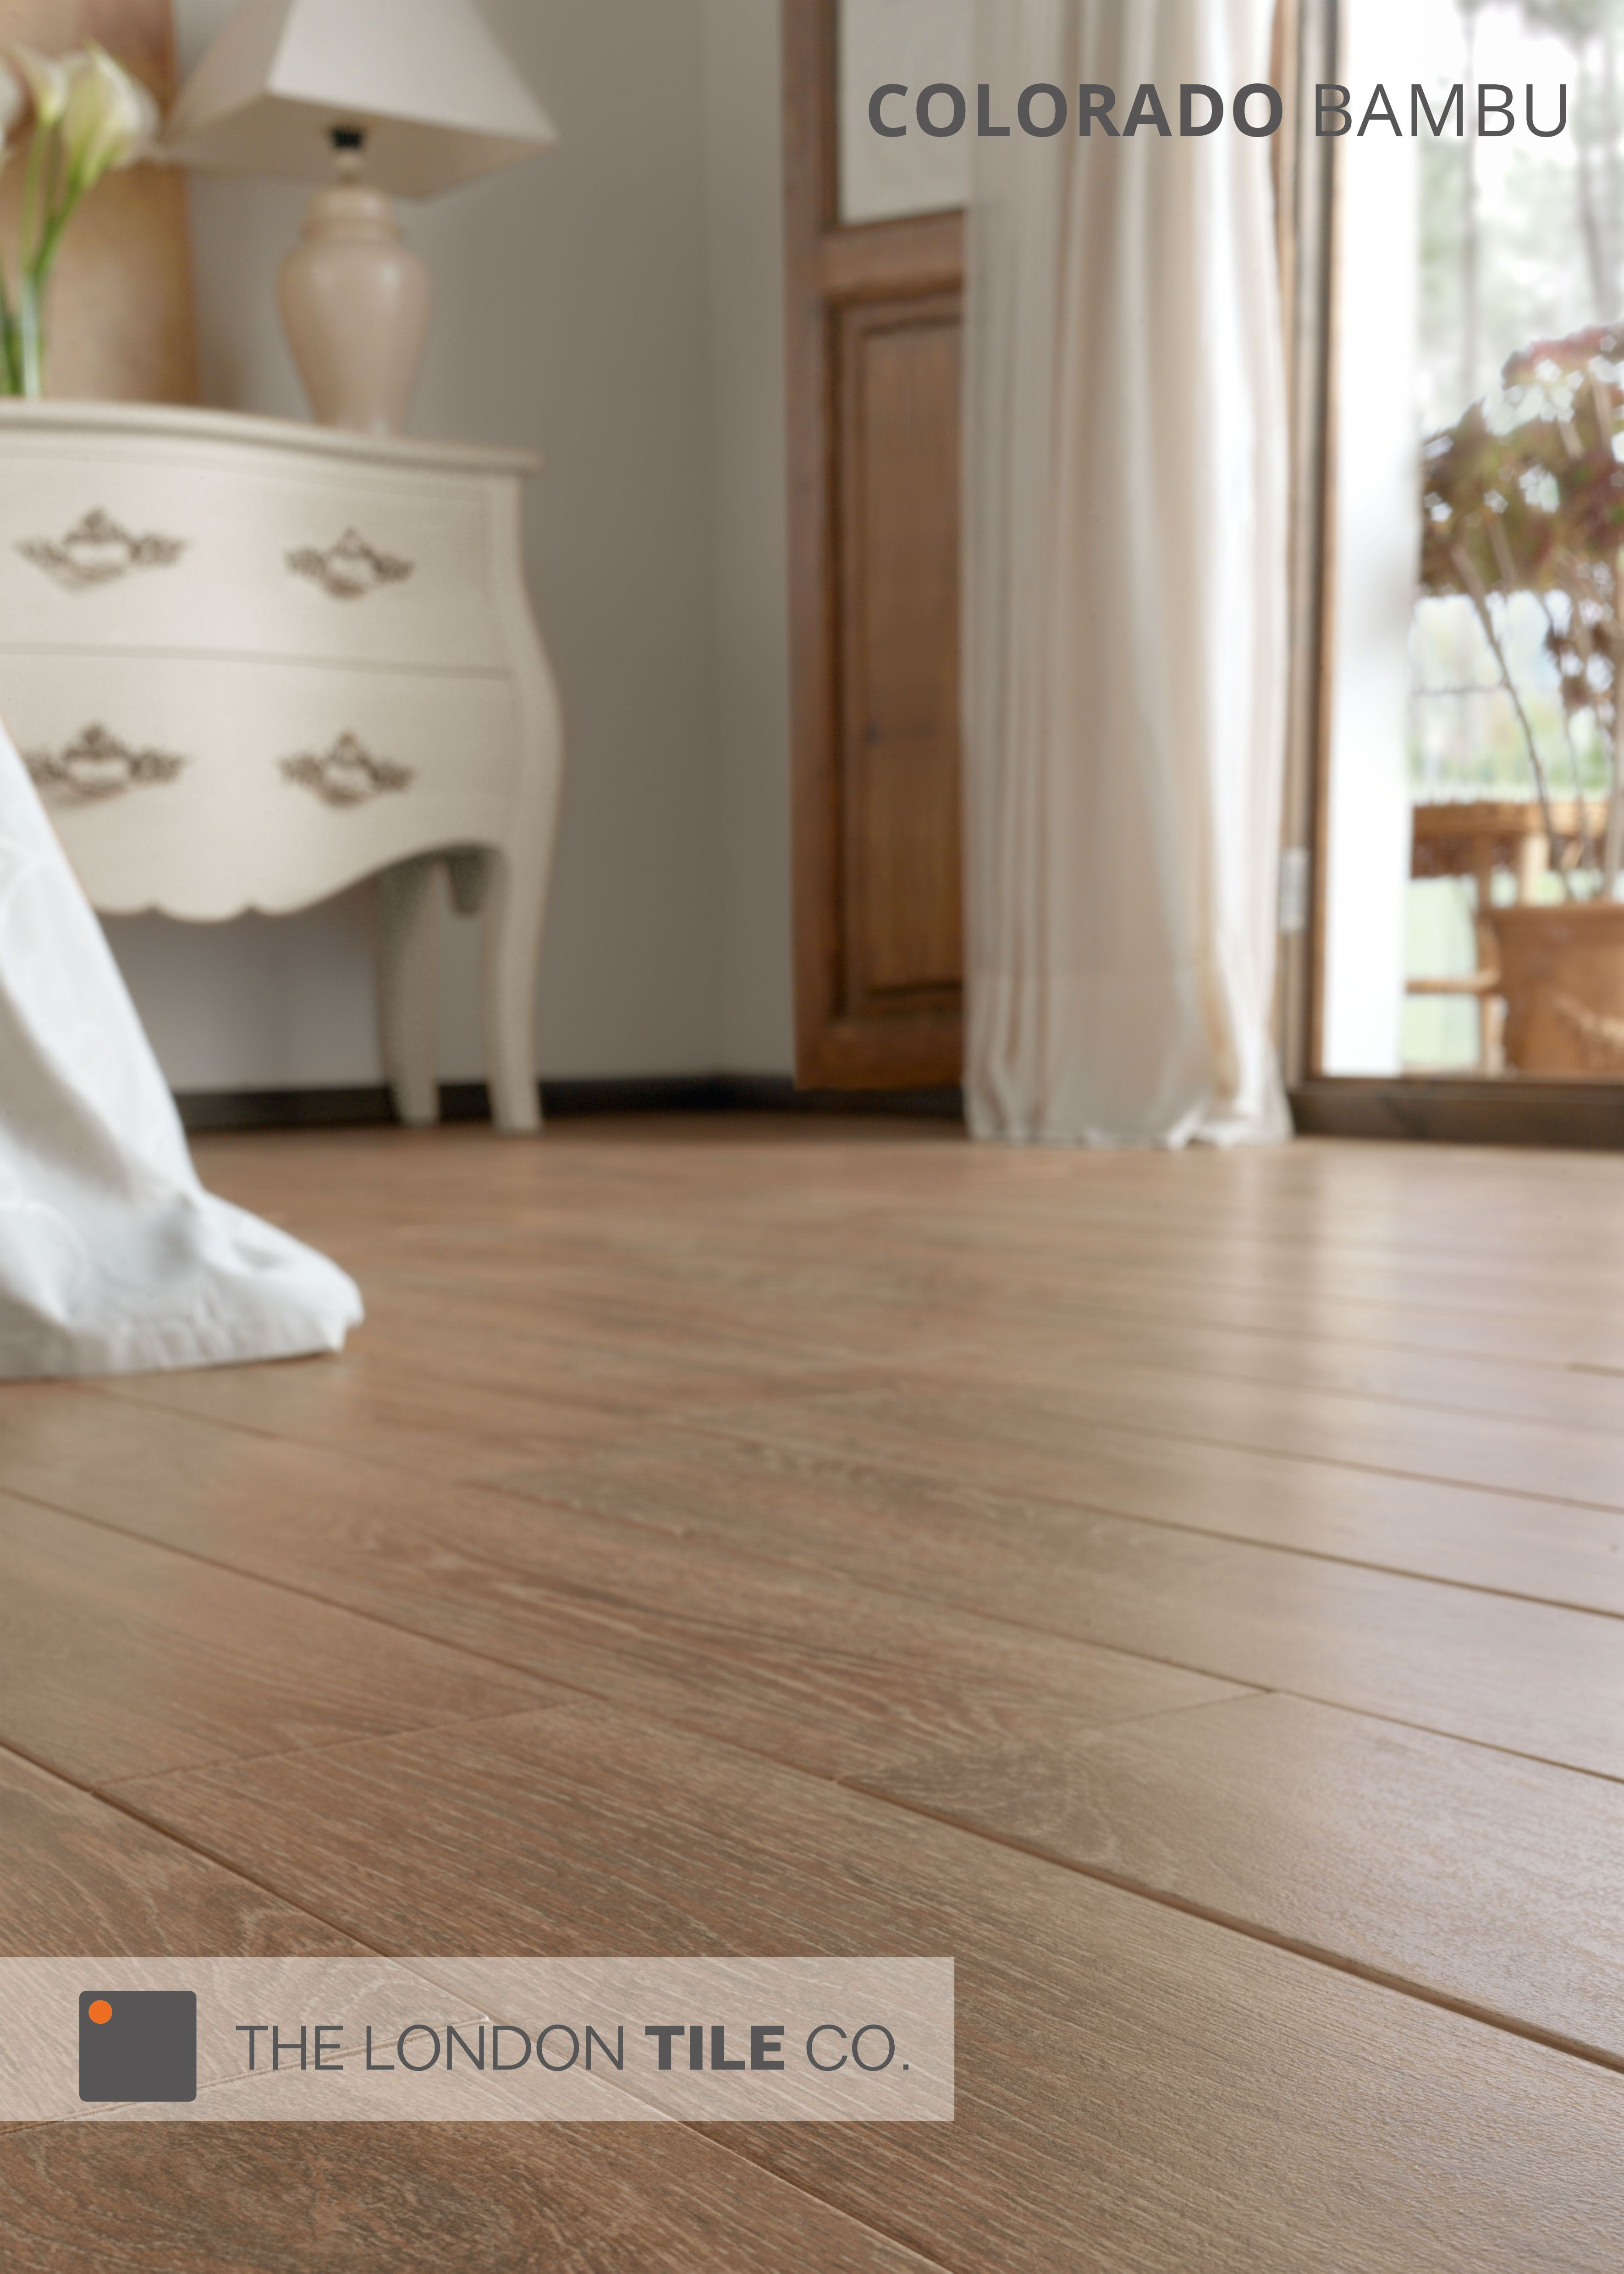 The Colorado Range Of Wood Effect Tiles Look Natural And Are Great